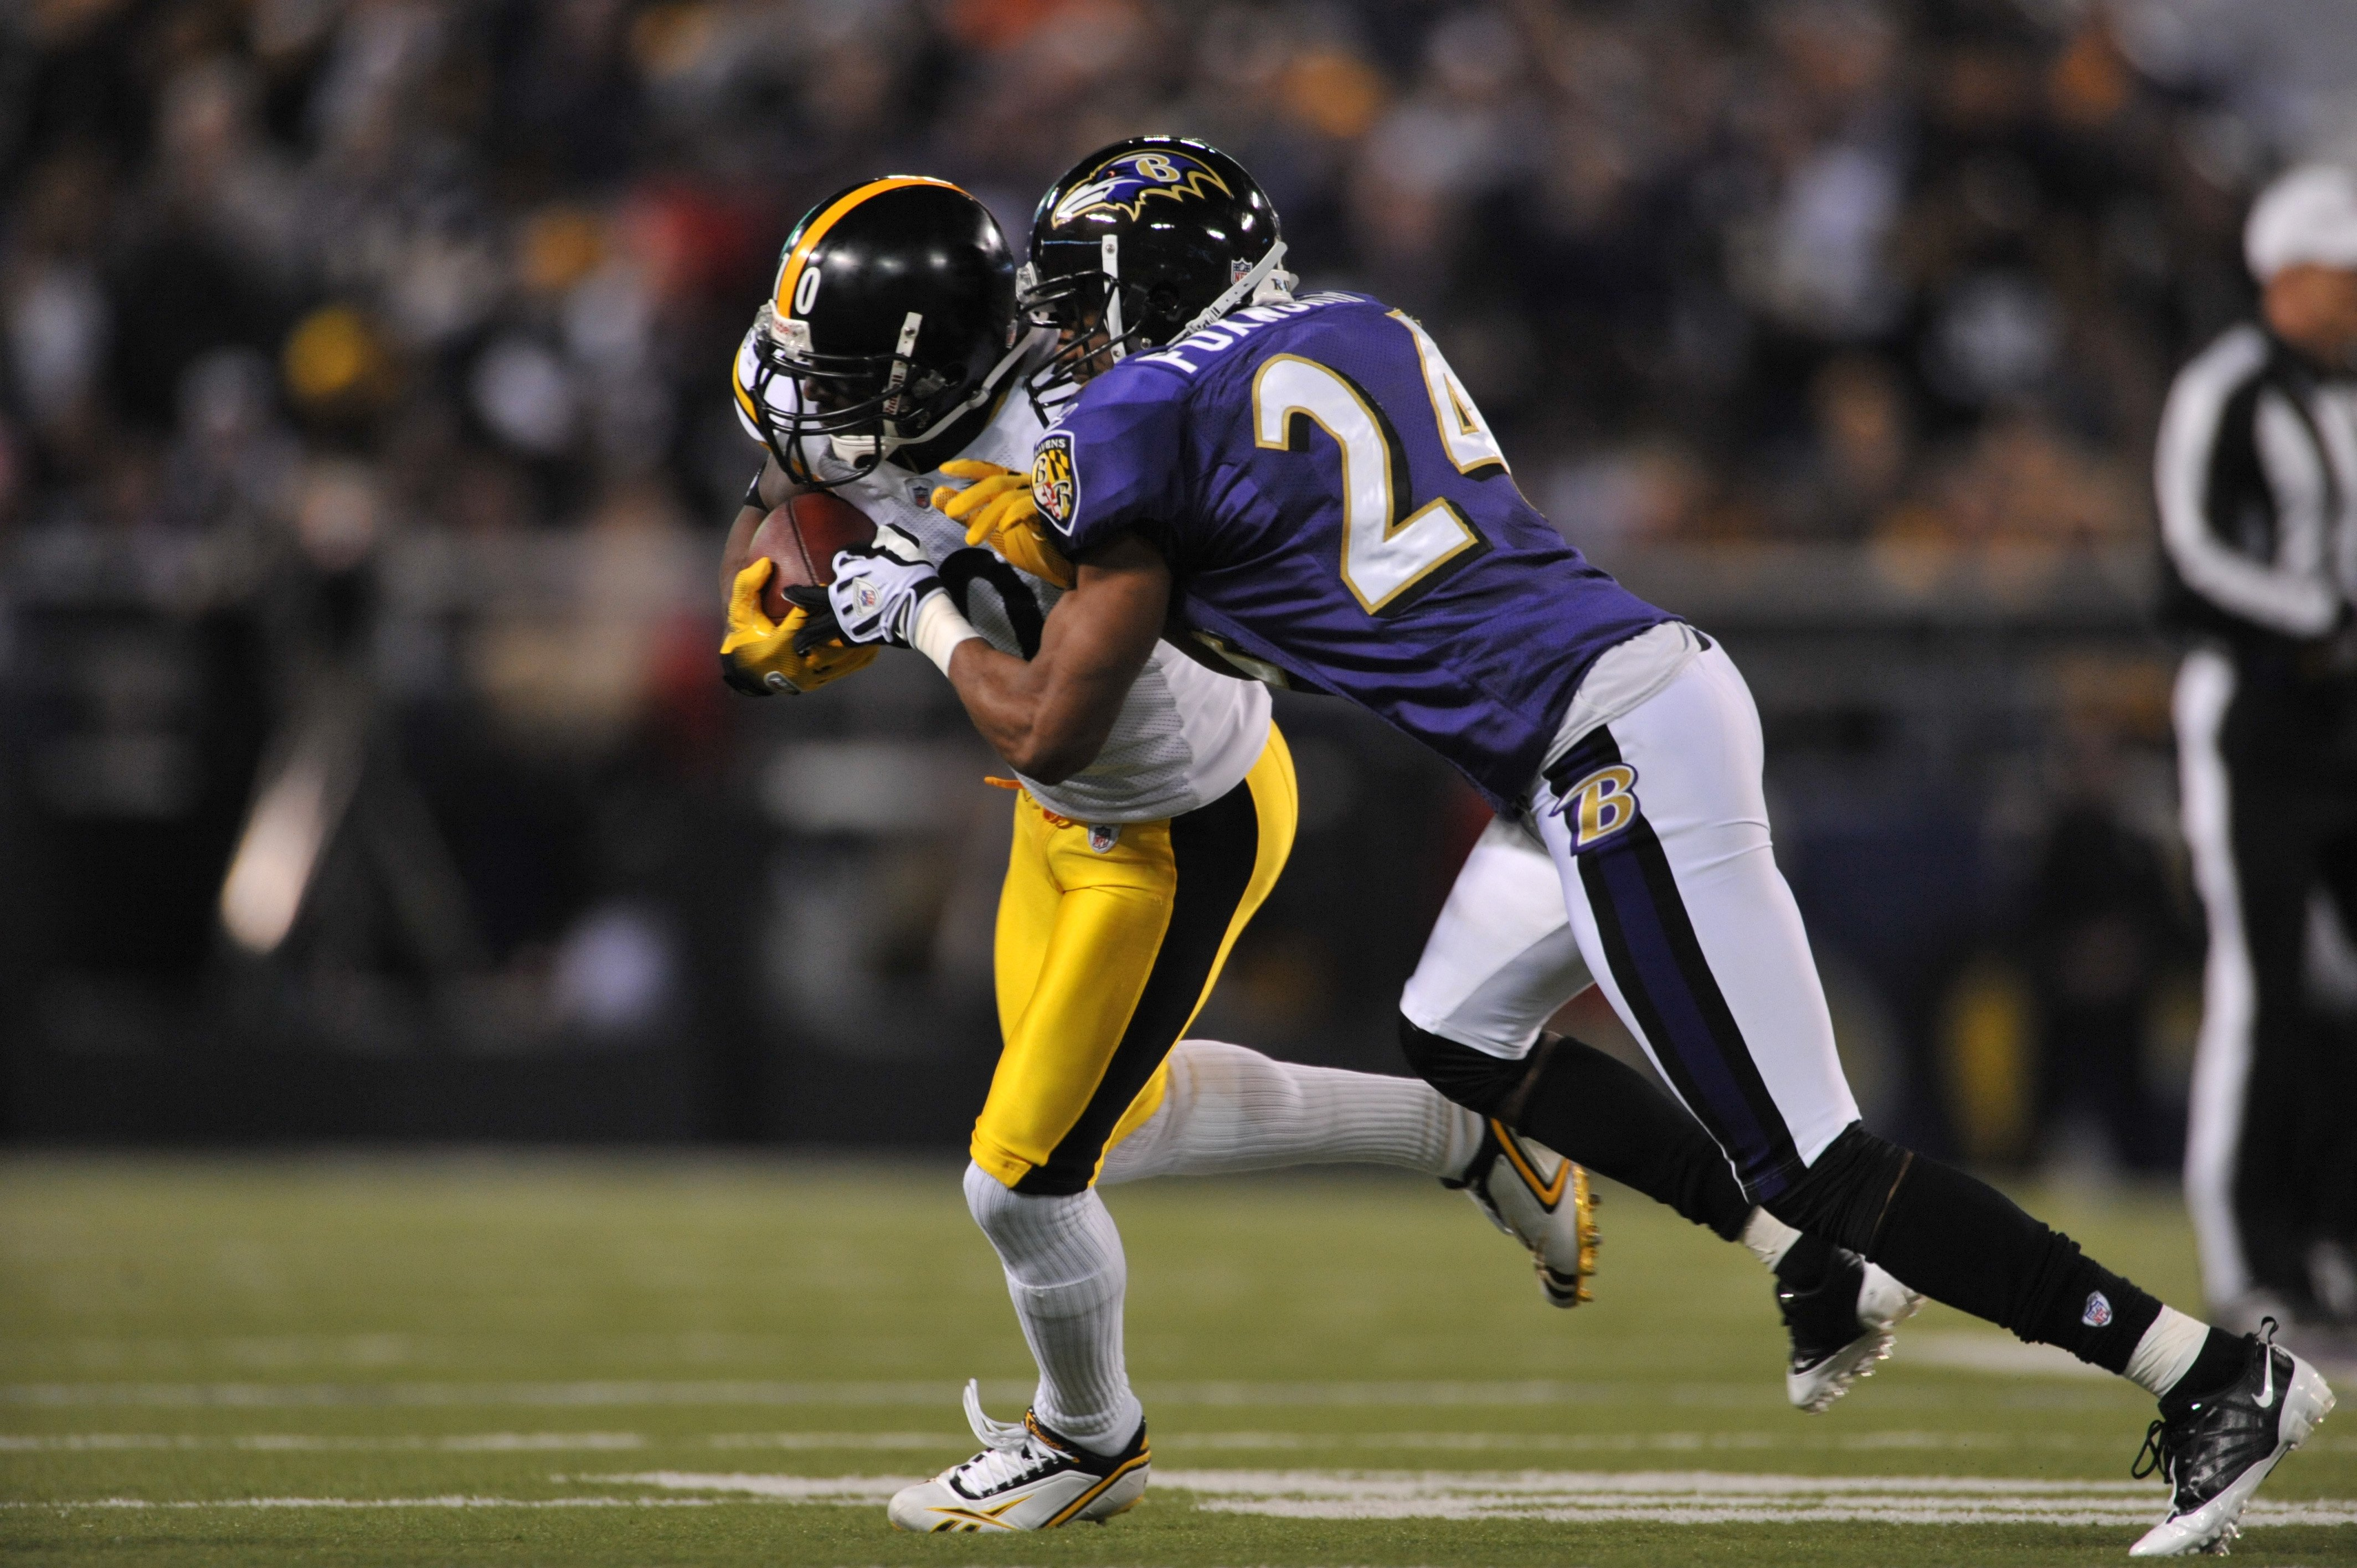 BALTIMORE - NOVEMBER 29:  Domonique Foxworth #24 of the Baltimore Ravens makes a tackle against the Pittsburgh Steelers at M&T Bank Stadium on November 29, 2009 in Baltimore, Maryland. The Ravens defeated the Steelers 20-17. (Photo by Larry French/Getty I